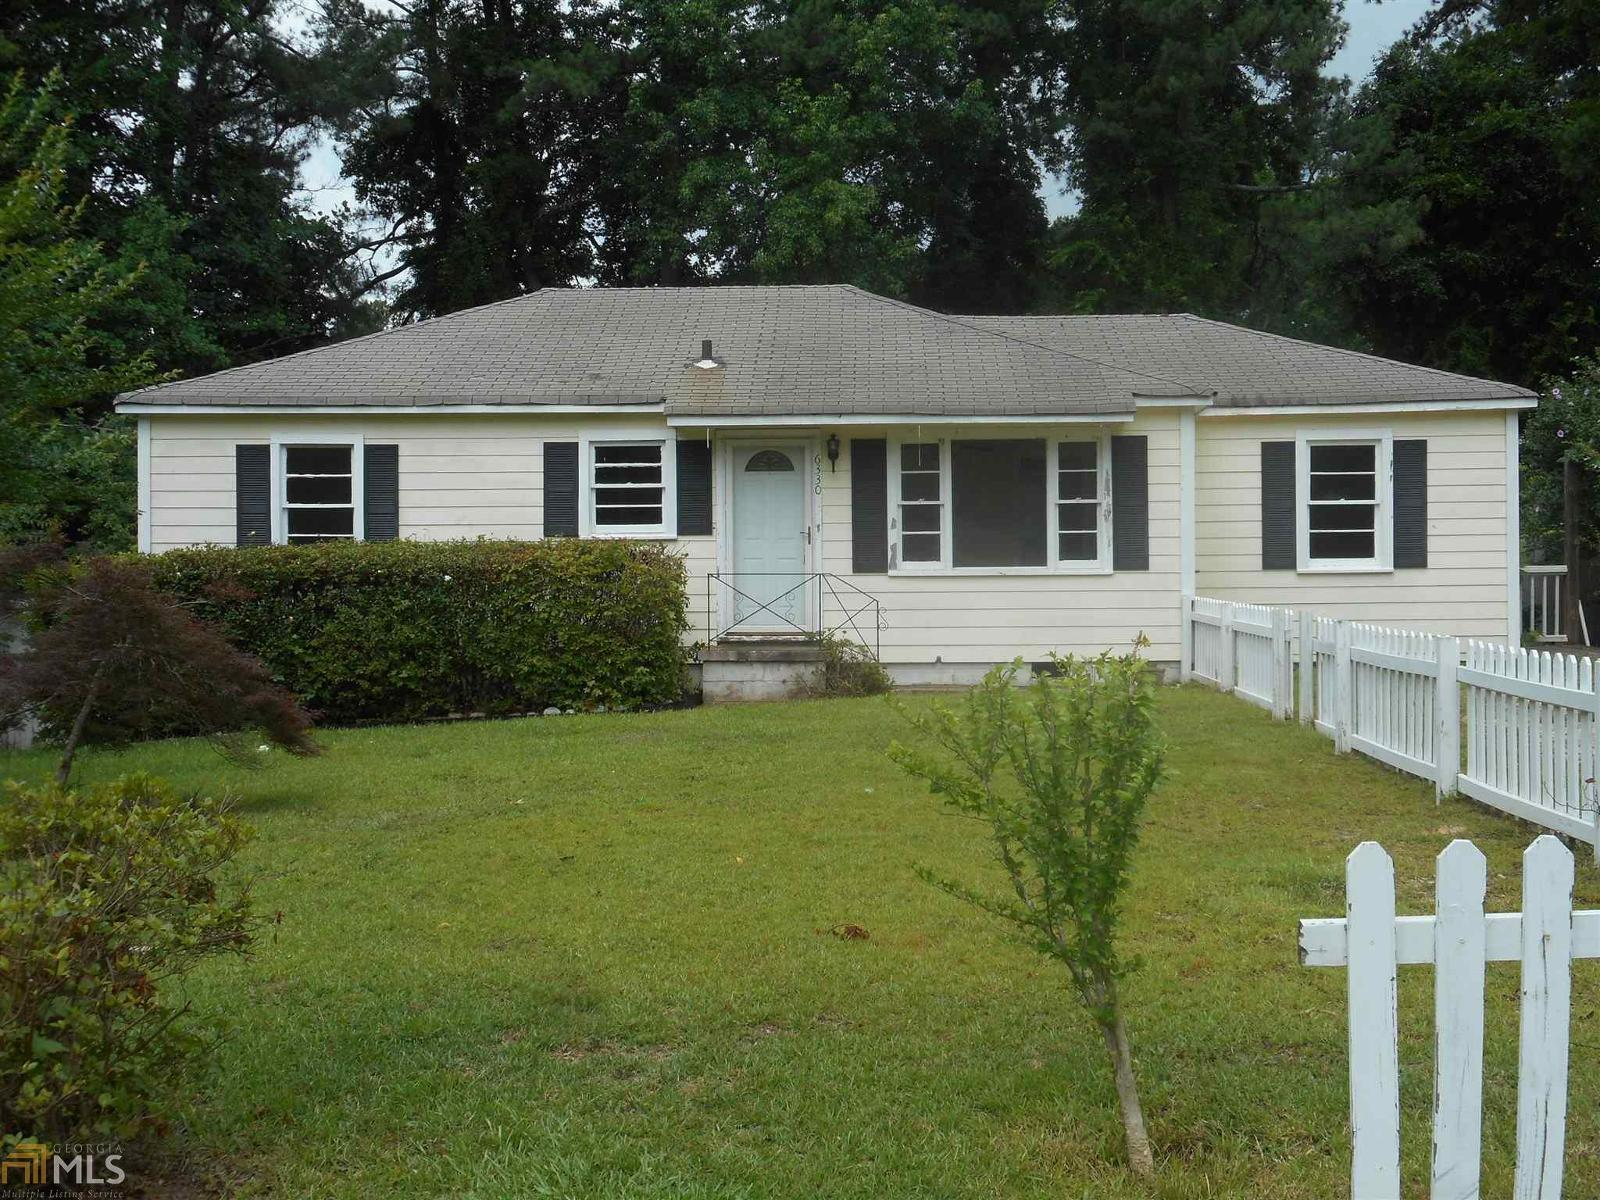 6330 sweetbriar dr sw mableton ga mls 8210355 for Sweetbriar garden homes